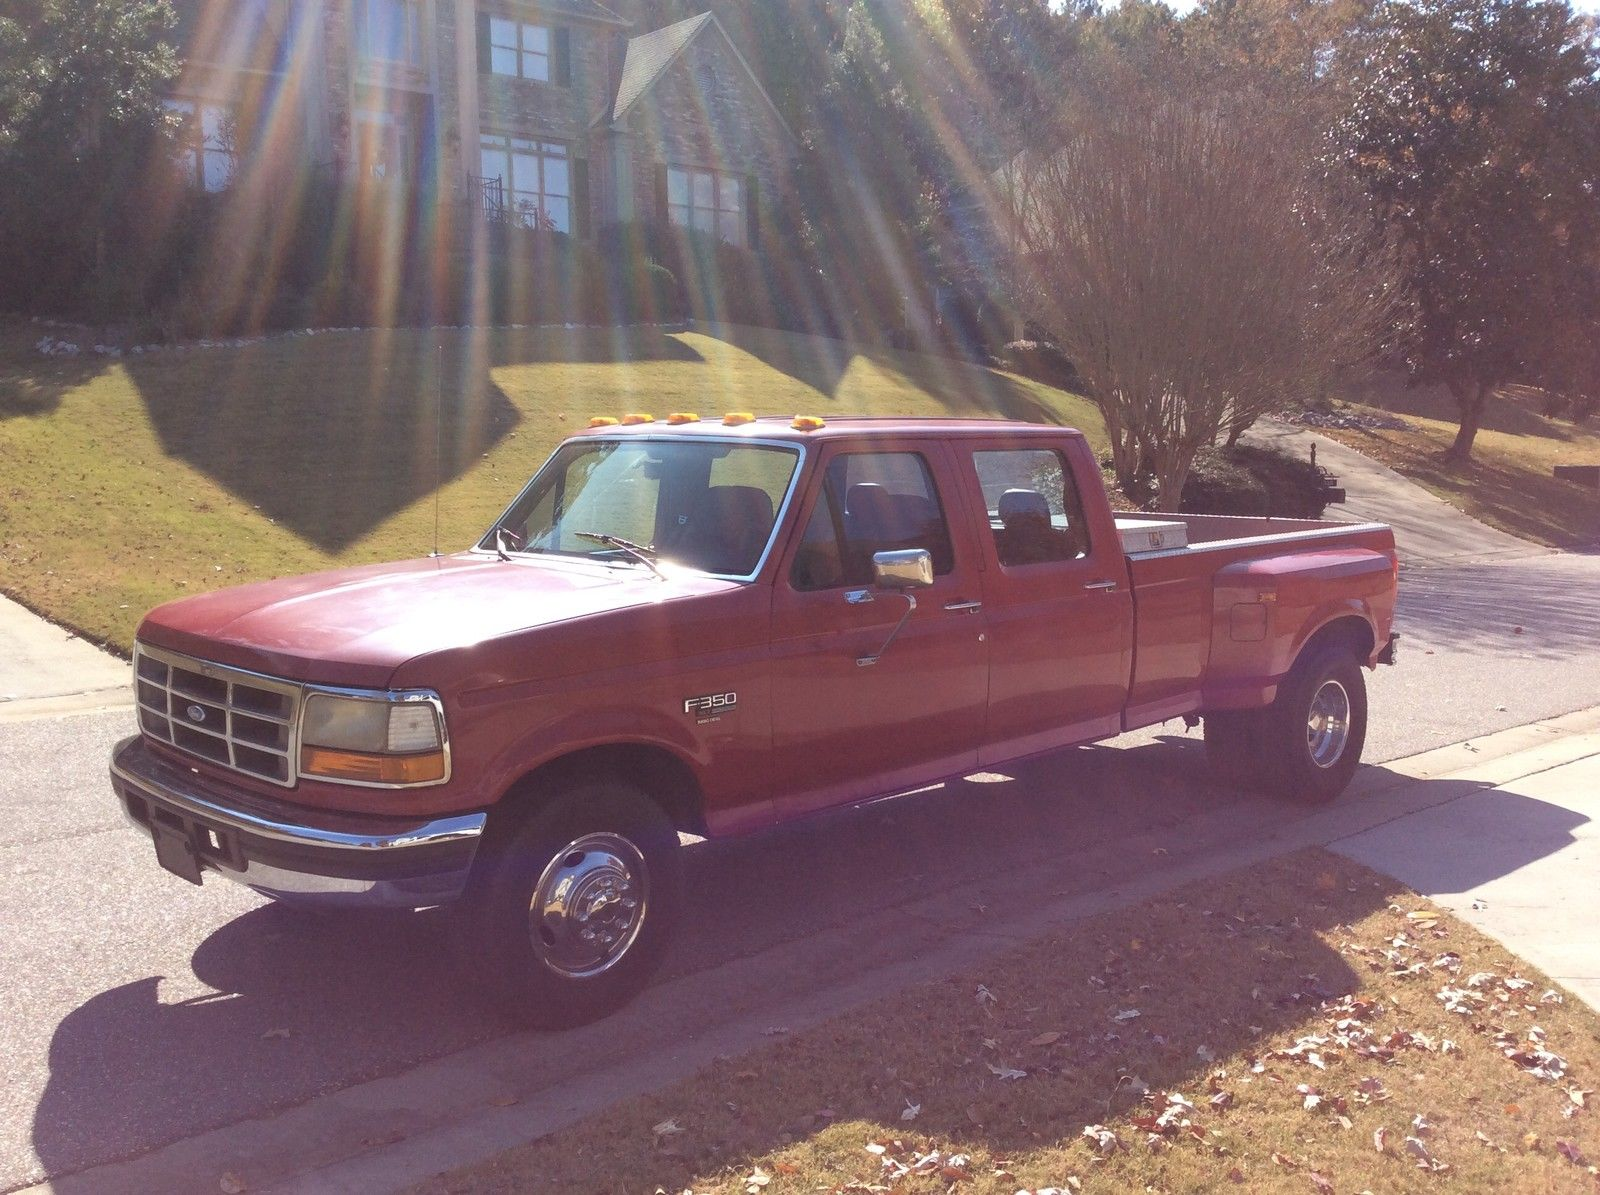 1994 Ford F350 XLT Crew Cab Dually 7.3 Turbo Diesel Low Miles - Classic Ford F-350 1994 for sale